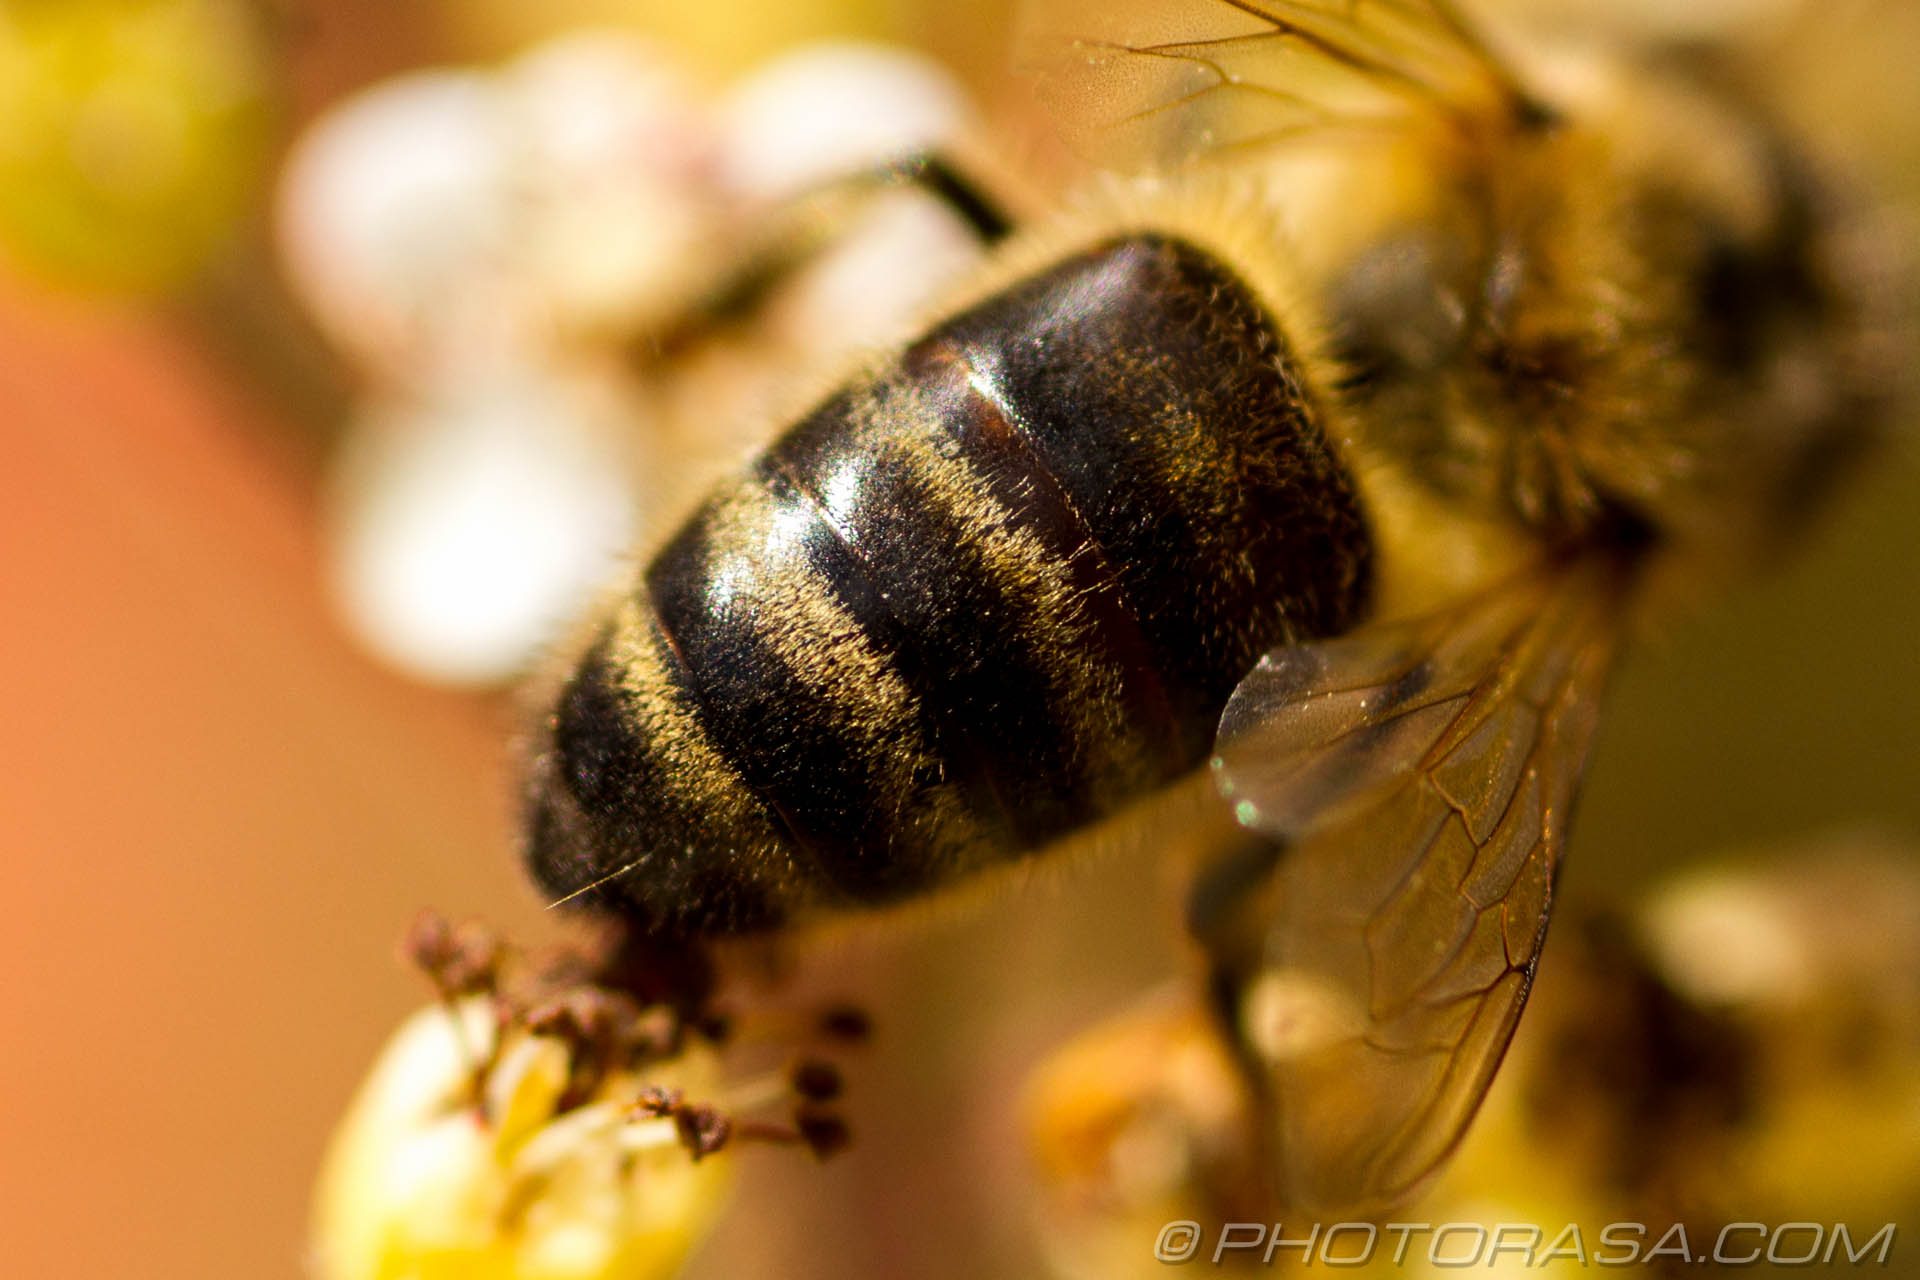 http://photorasa.com/honey-bees/honey-bee-striped-abdomen/